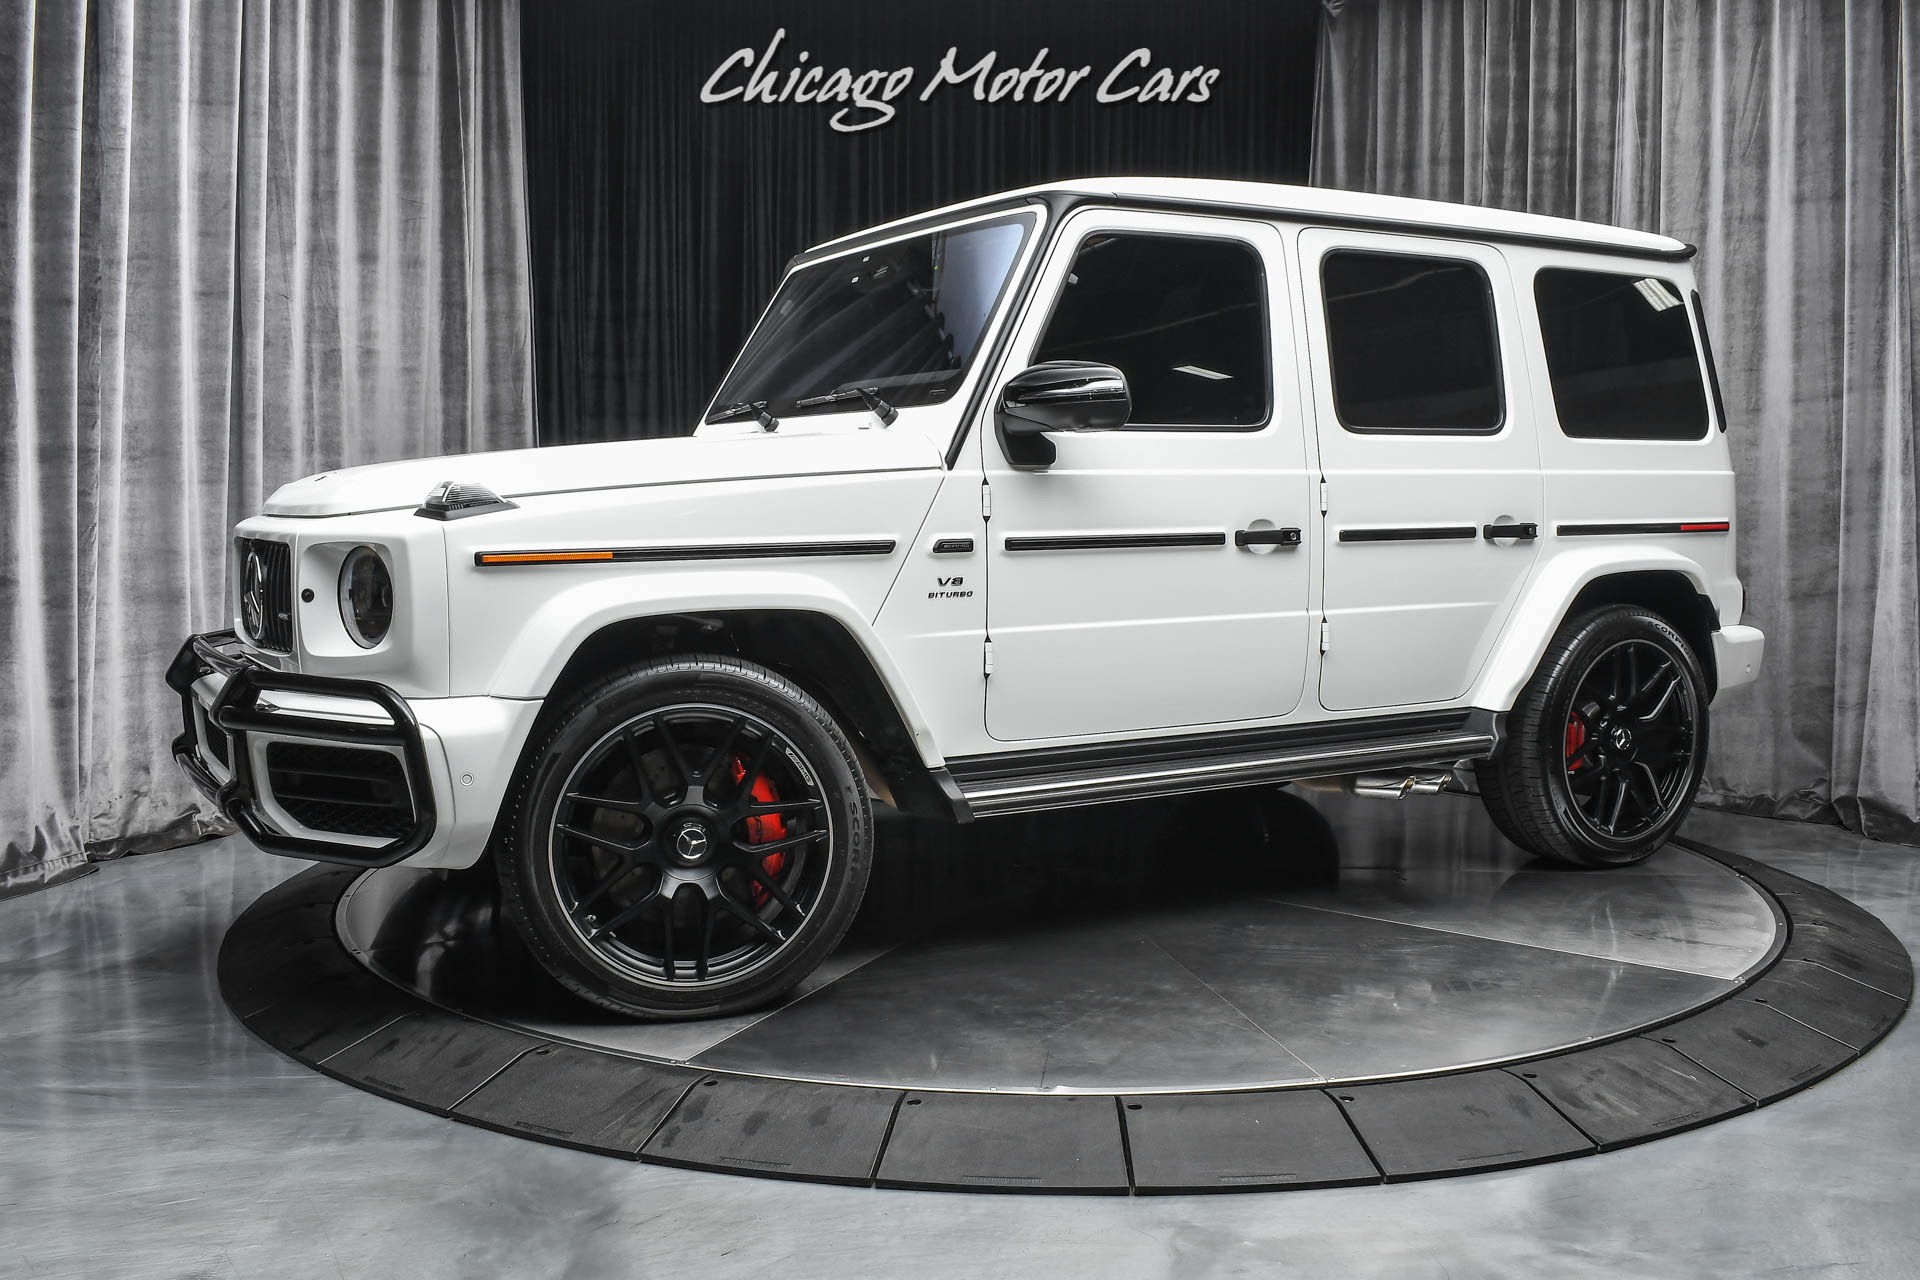 Used 2020 Mercedes Benz G Class Amg G63 G Manufaktur Interior Package Hot White On Red Carbon Fiber For Sale Special Pricing Chicago Motor Cars Stock Lx353193